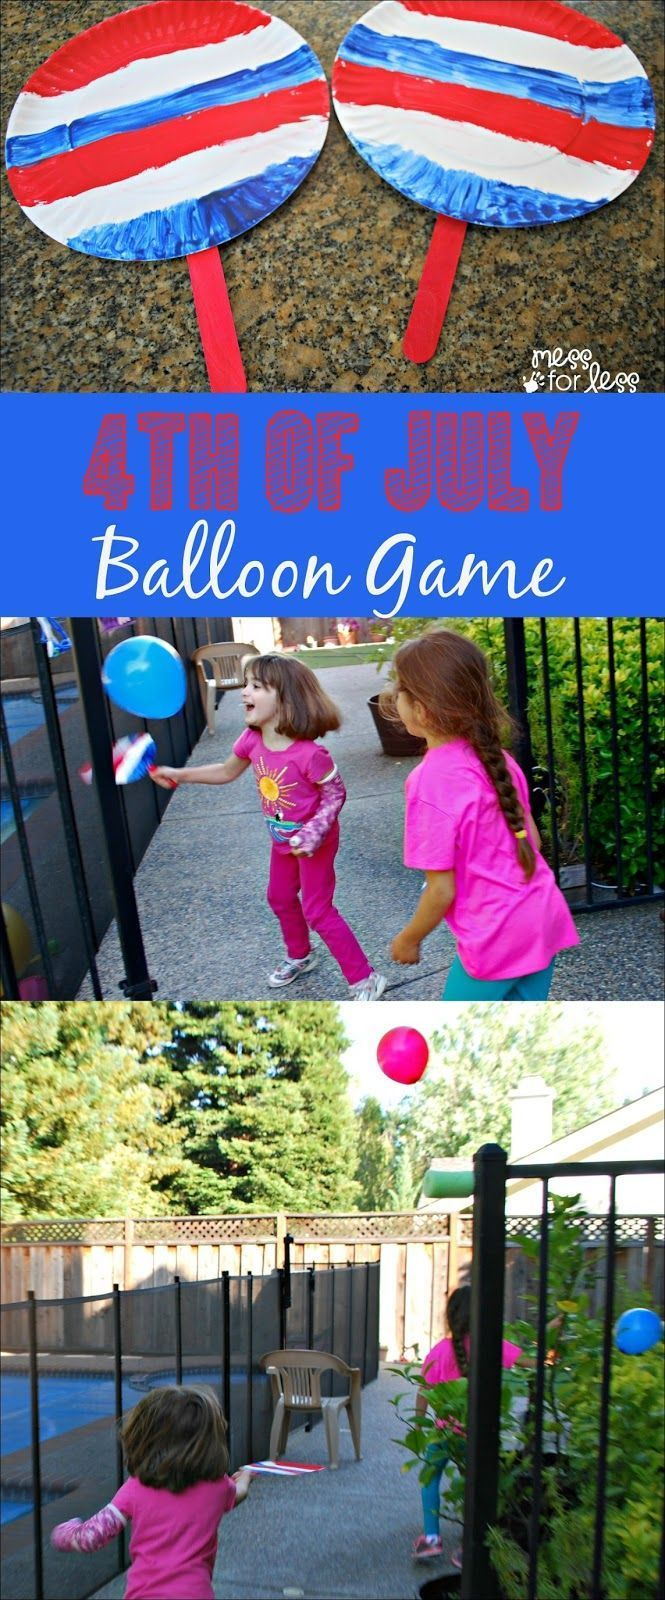 Patriotic Games for Kids - find out how to make this DIY balloon game that the kids can enjoy on the 4th of July. This is a fun 4th of July craft and 4th of July activity.